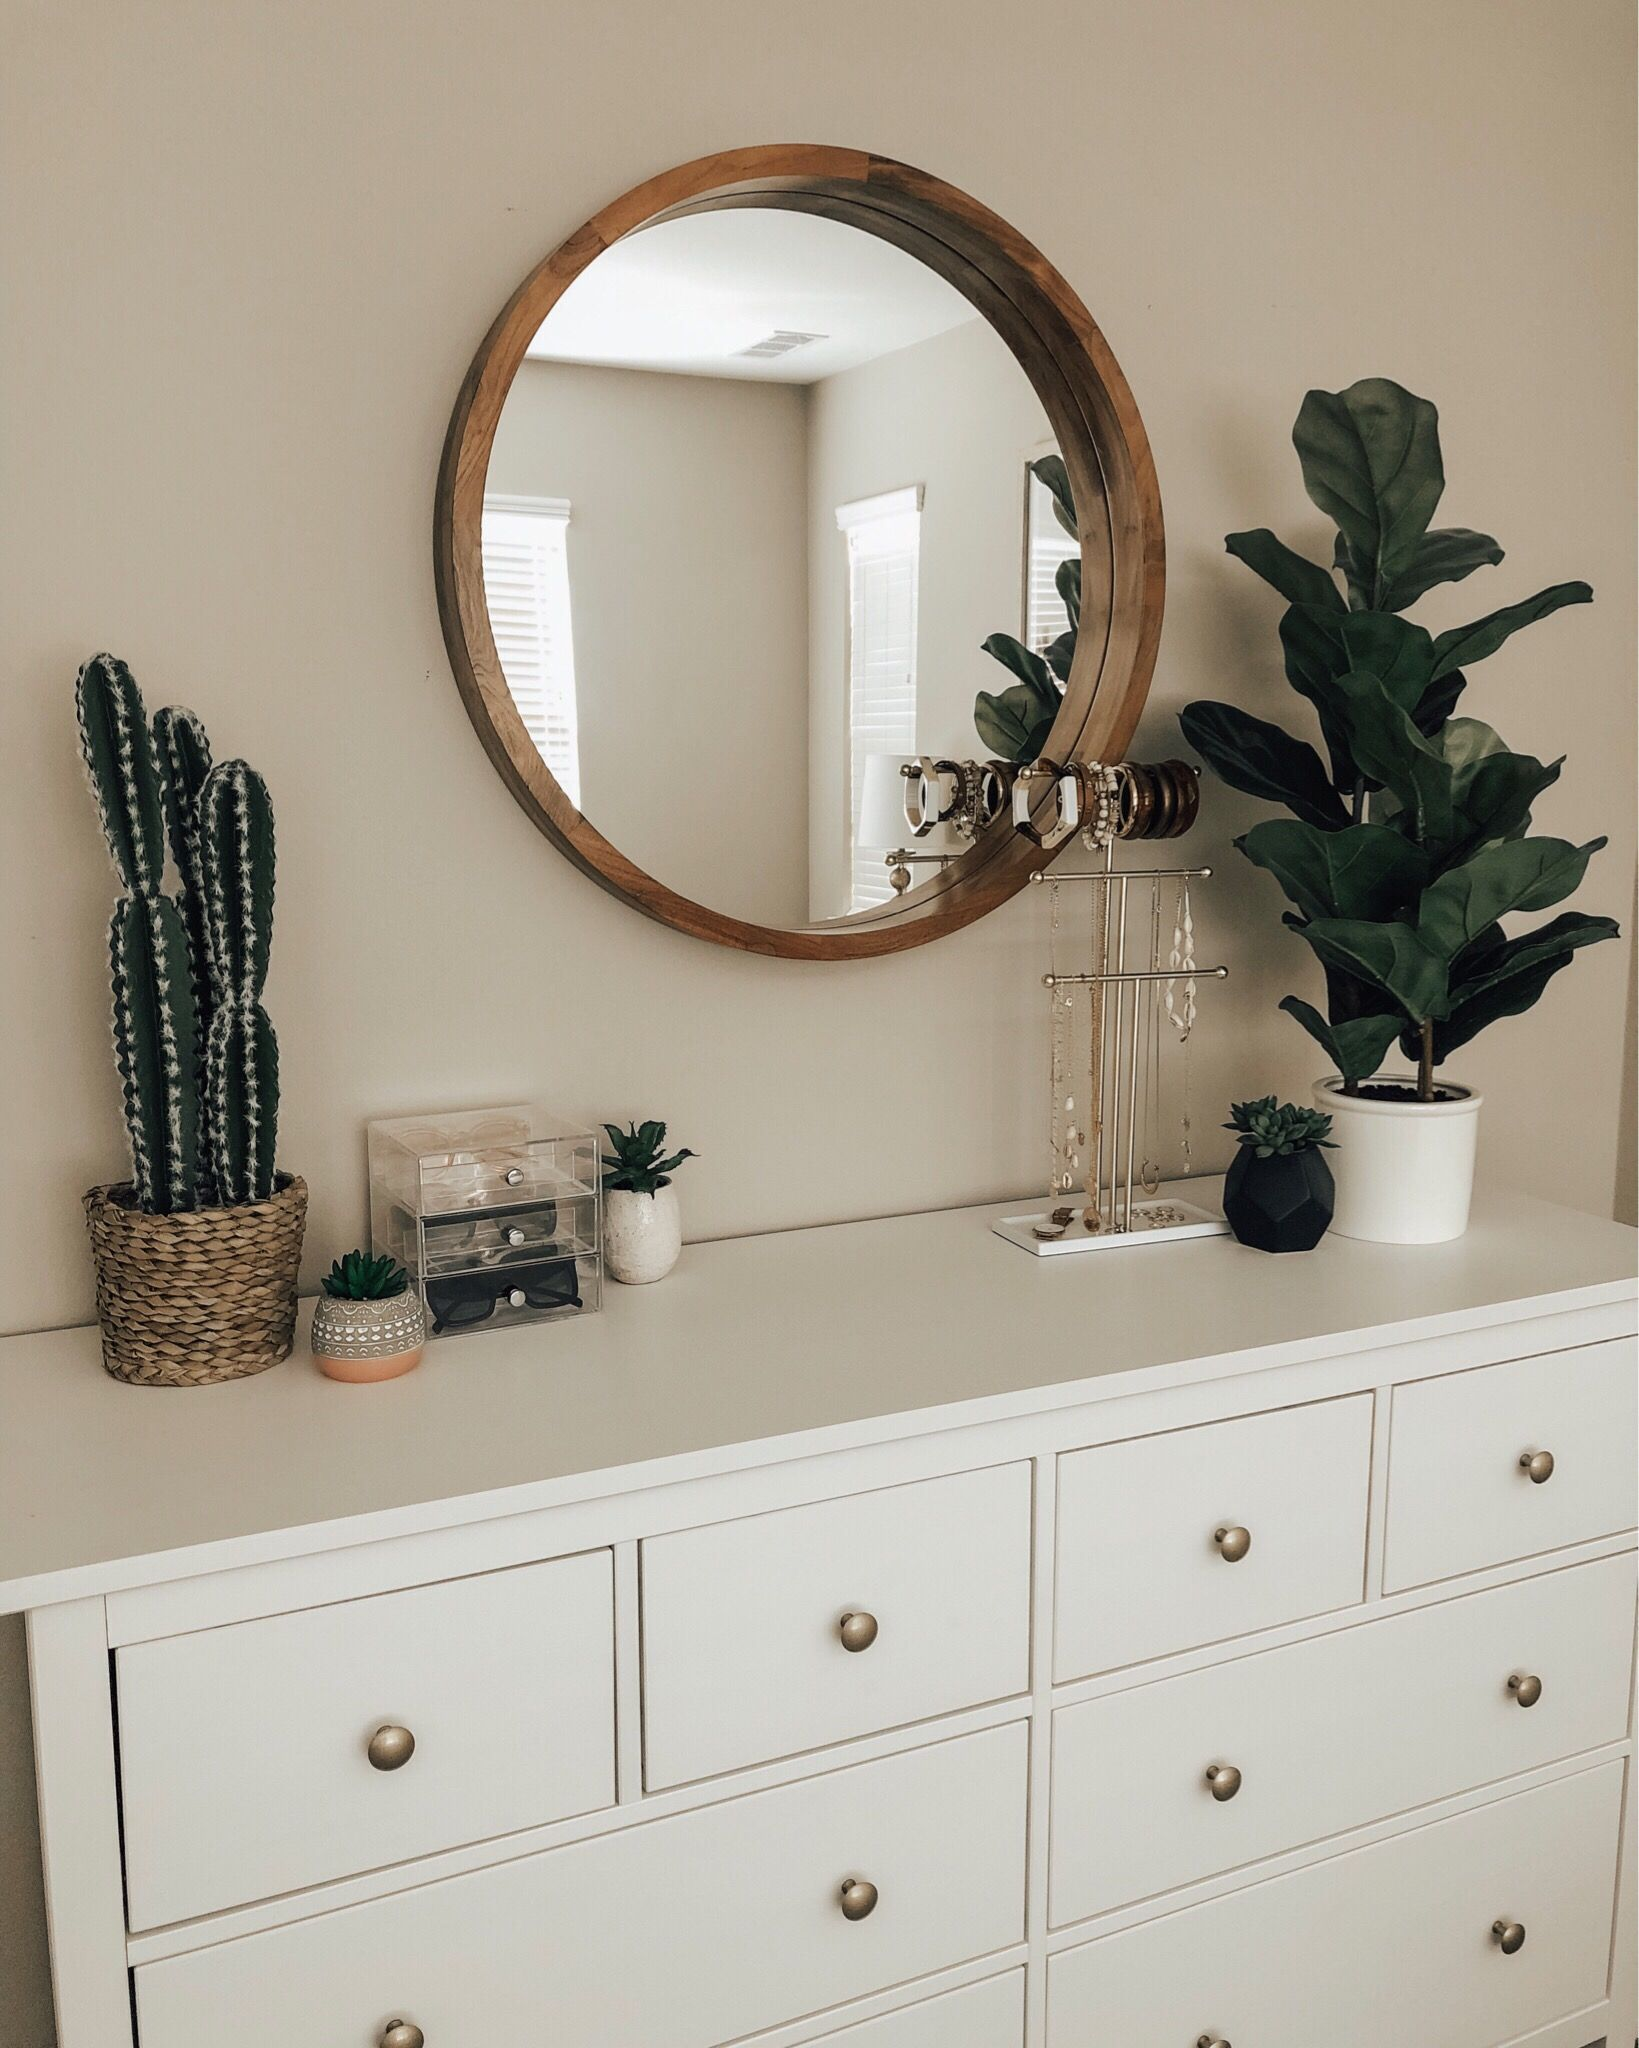 STOCK UP WITH THE 2-DAY TARGET HOME SALE - Jaclyn De Leon Style -  STOCK UP WITH THE 2-DAY TARGET HOME SALE -Jaclyn De Leon Style + Updating your home doesn't have  -